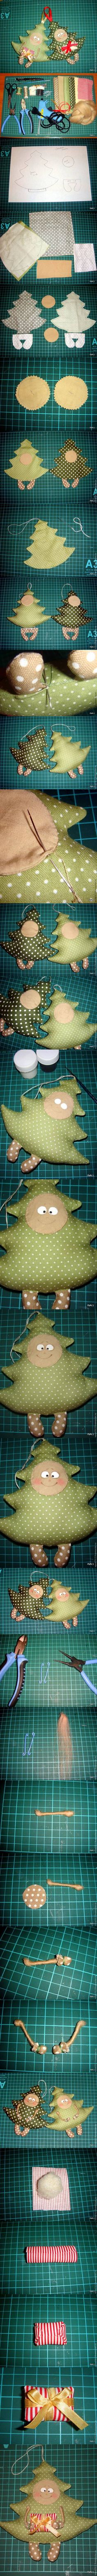 DIY Funny Fabric Christmas Tree DIY Projects